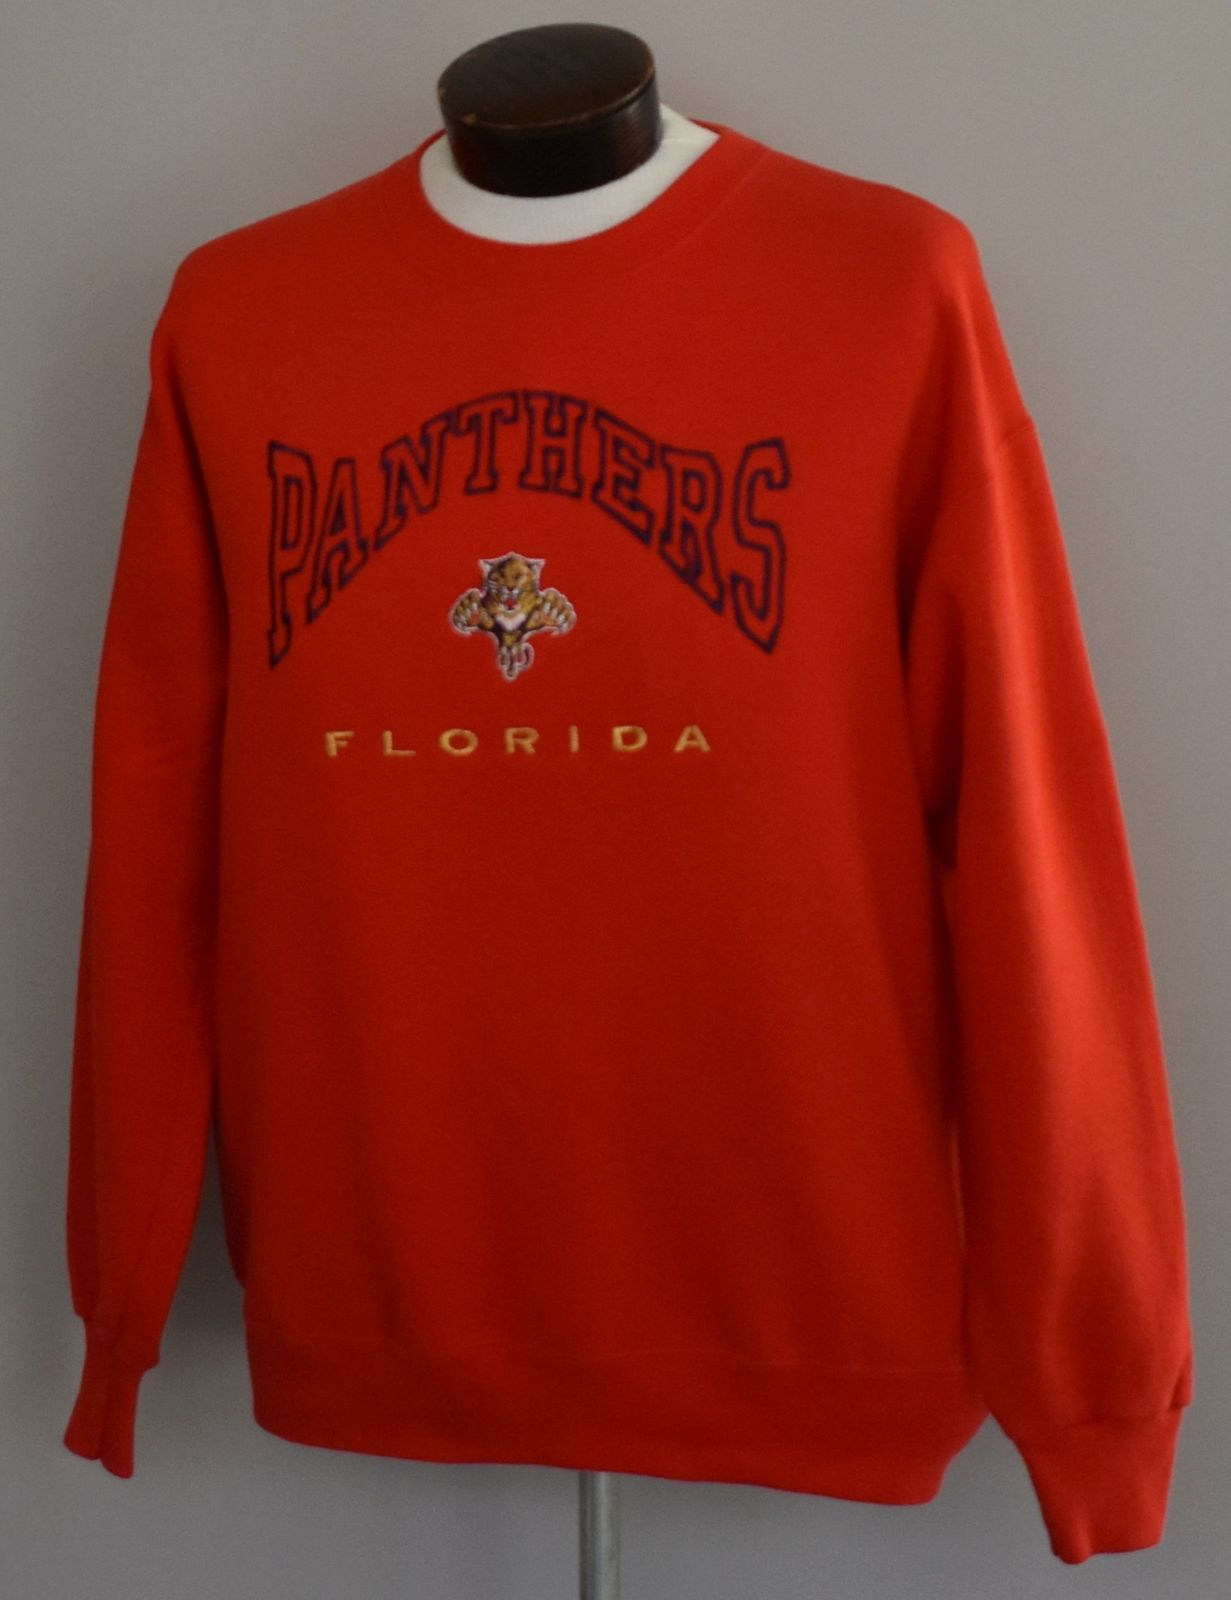 90s Florida Panthers Embroidered Crewneck Sweatshirt Size Hipster Large to XL image 3